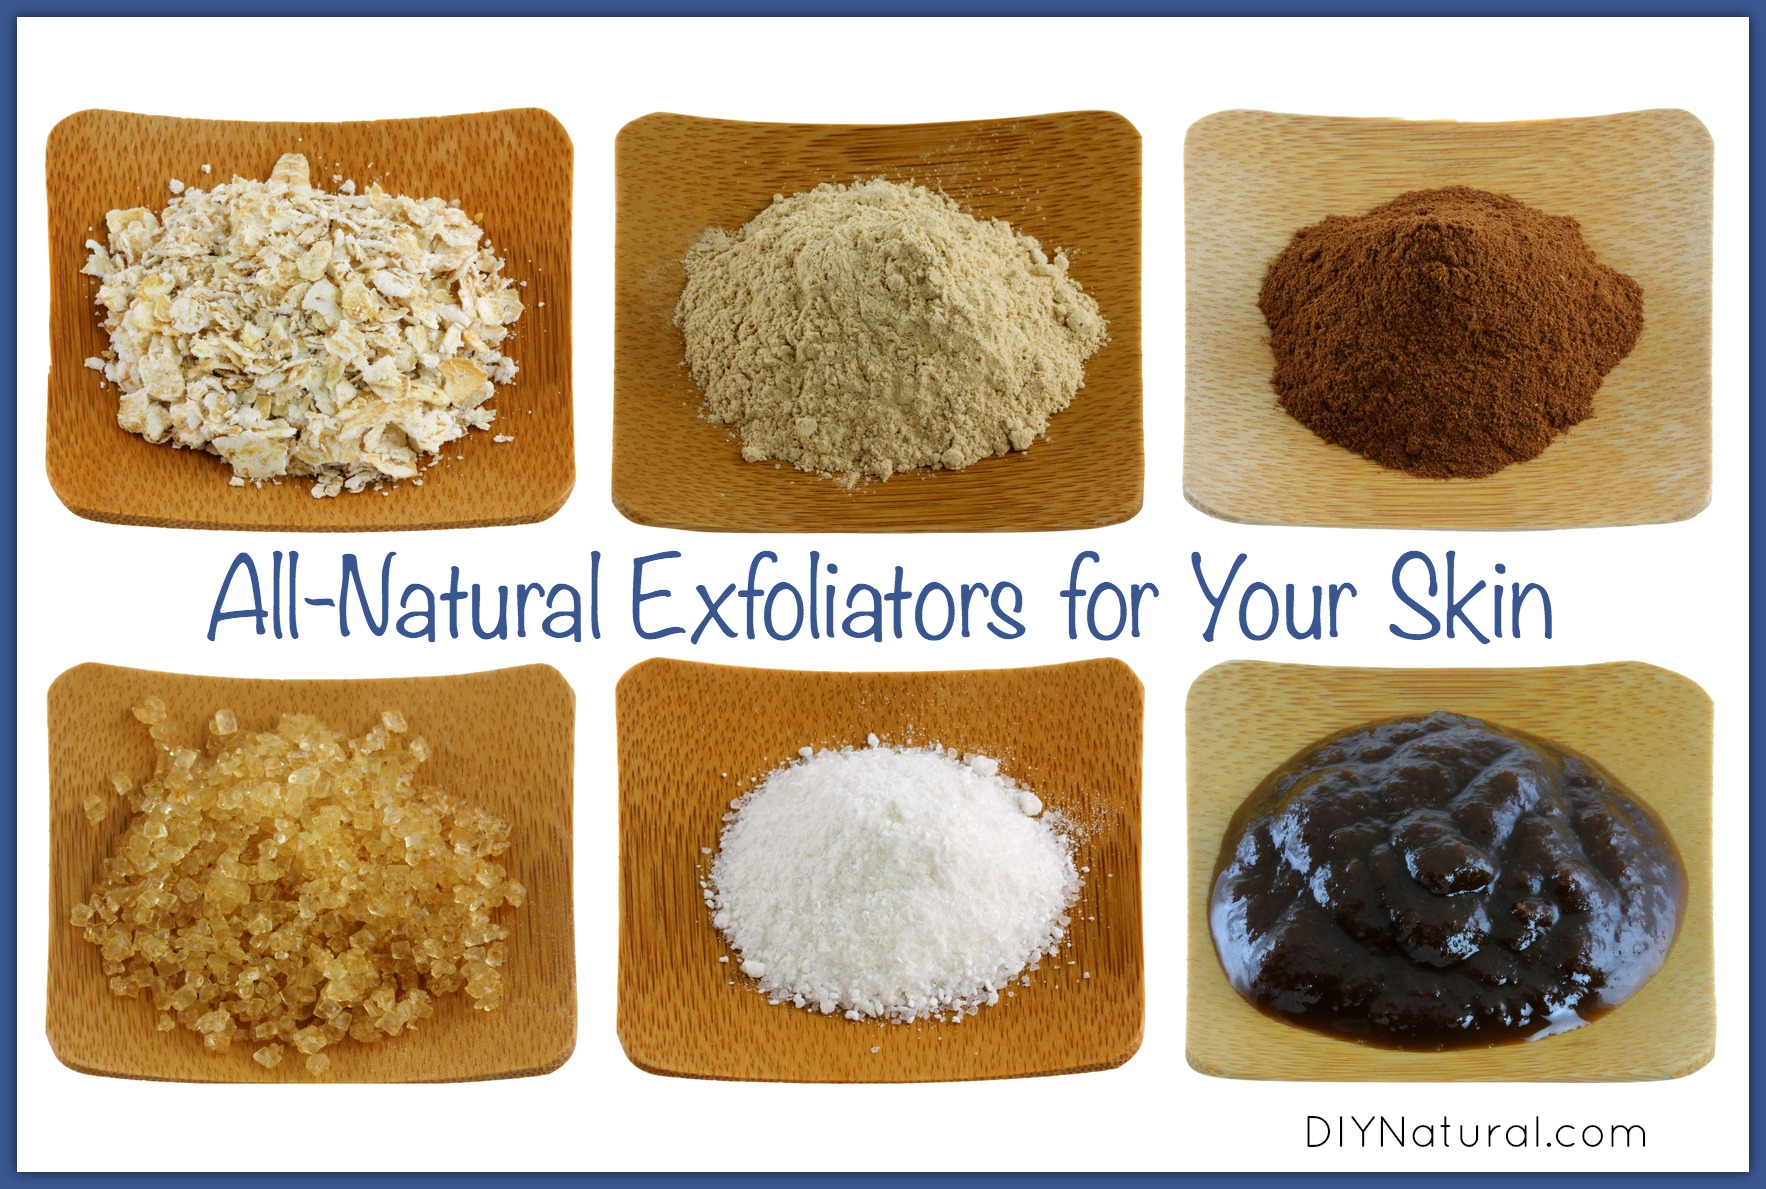 What Is Your Favorite Facial Exfoliant?